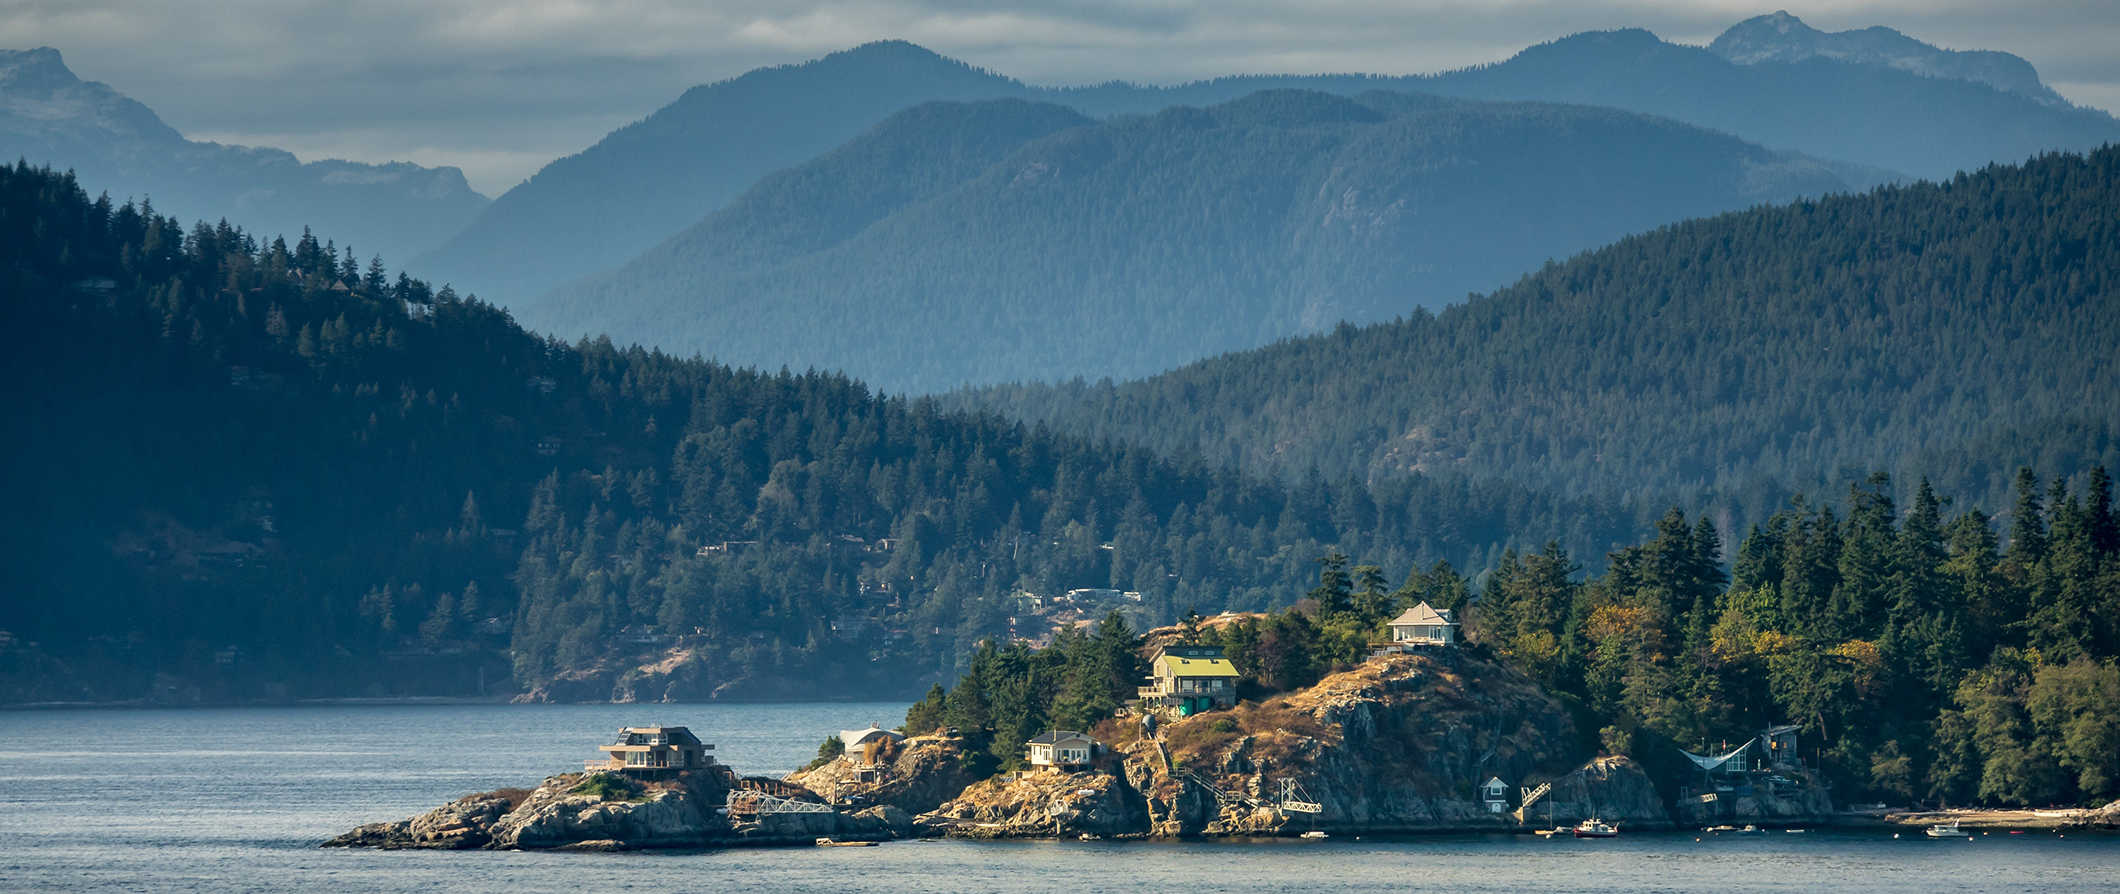 Cheap Accommodation In Vancouver Island